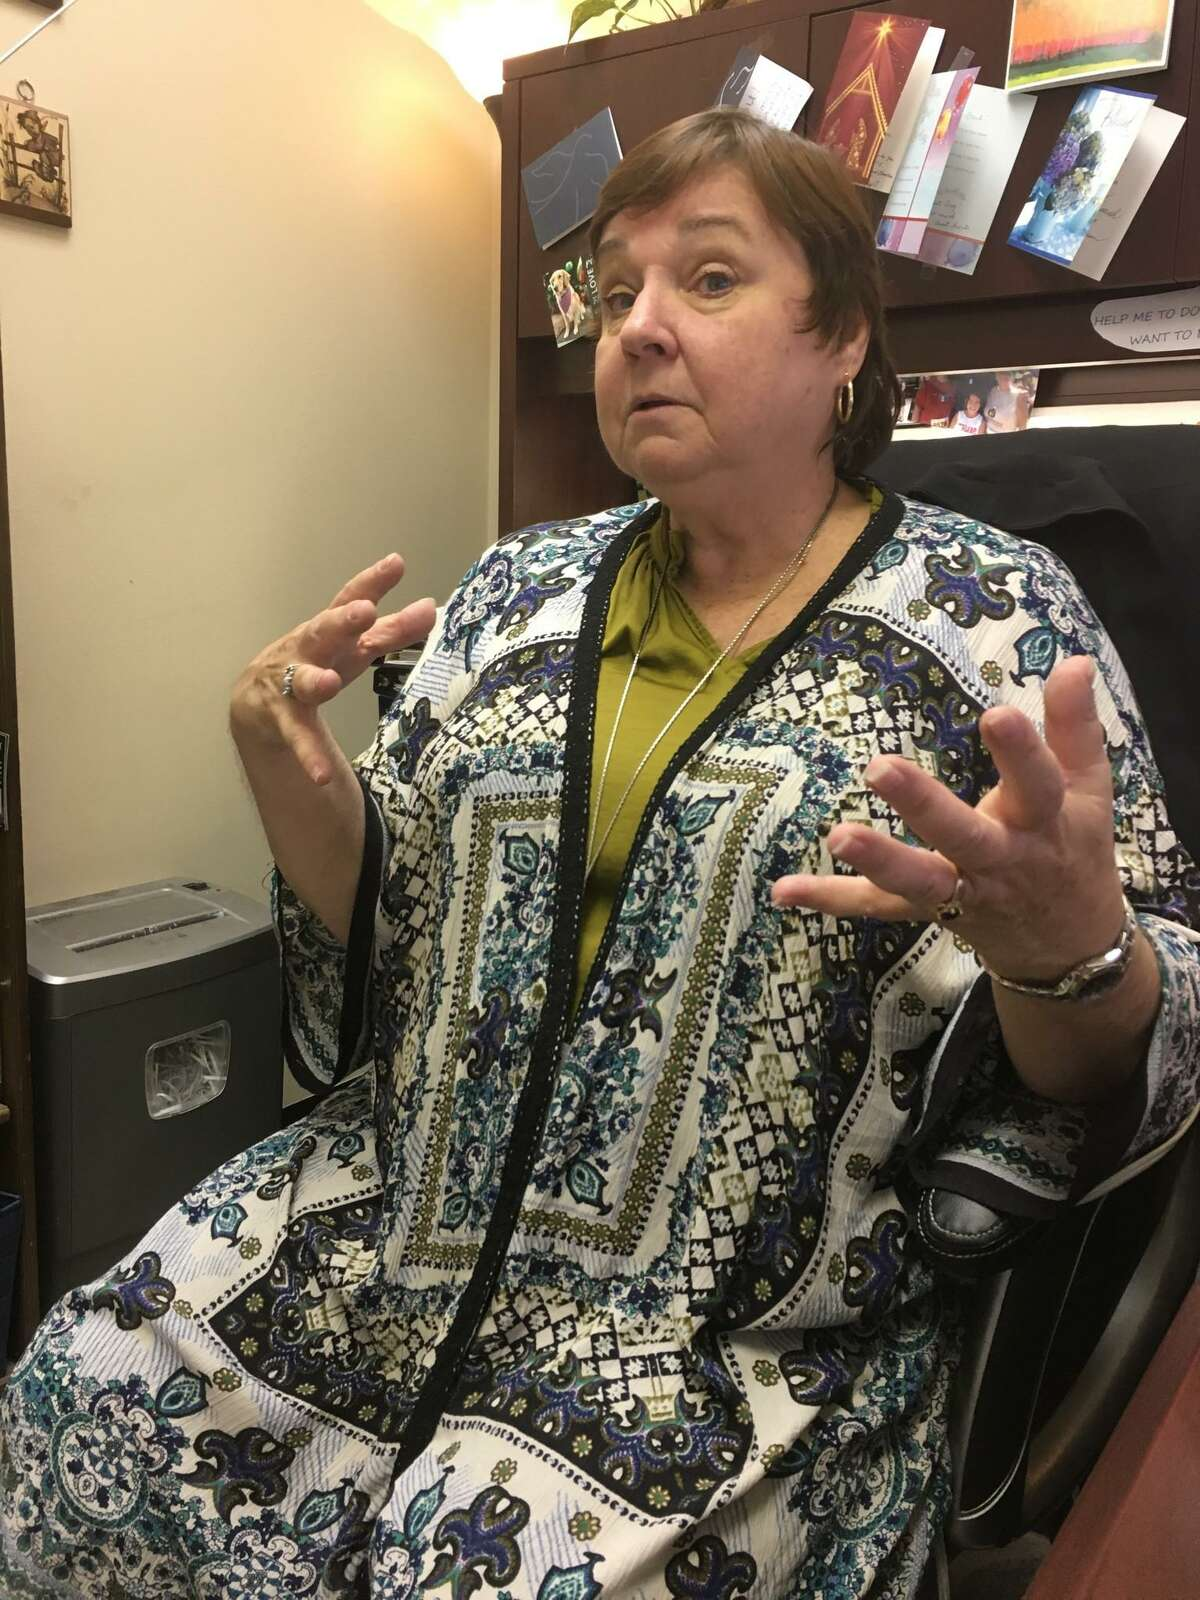 For the last two years, Barbara McInnis has served as the Victim Assistance Liaison coordinator for Harris County Precinct 5 Constable Ted Heap. She formerly assisted crime victims while working for the Houston Police Department.